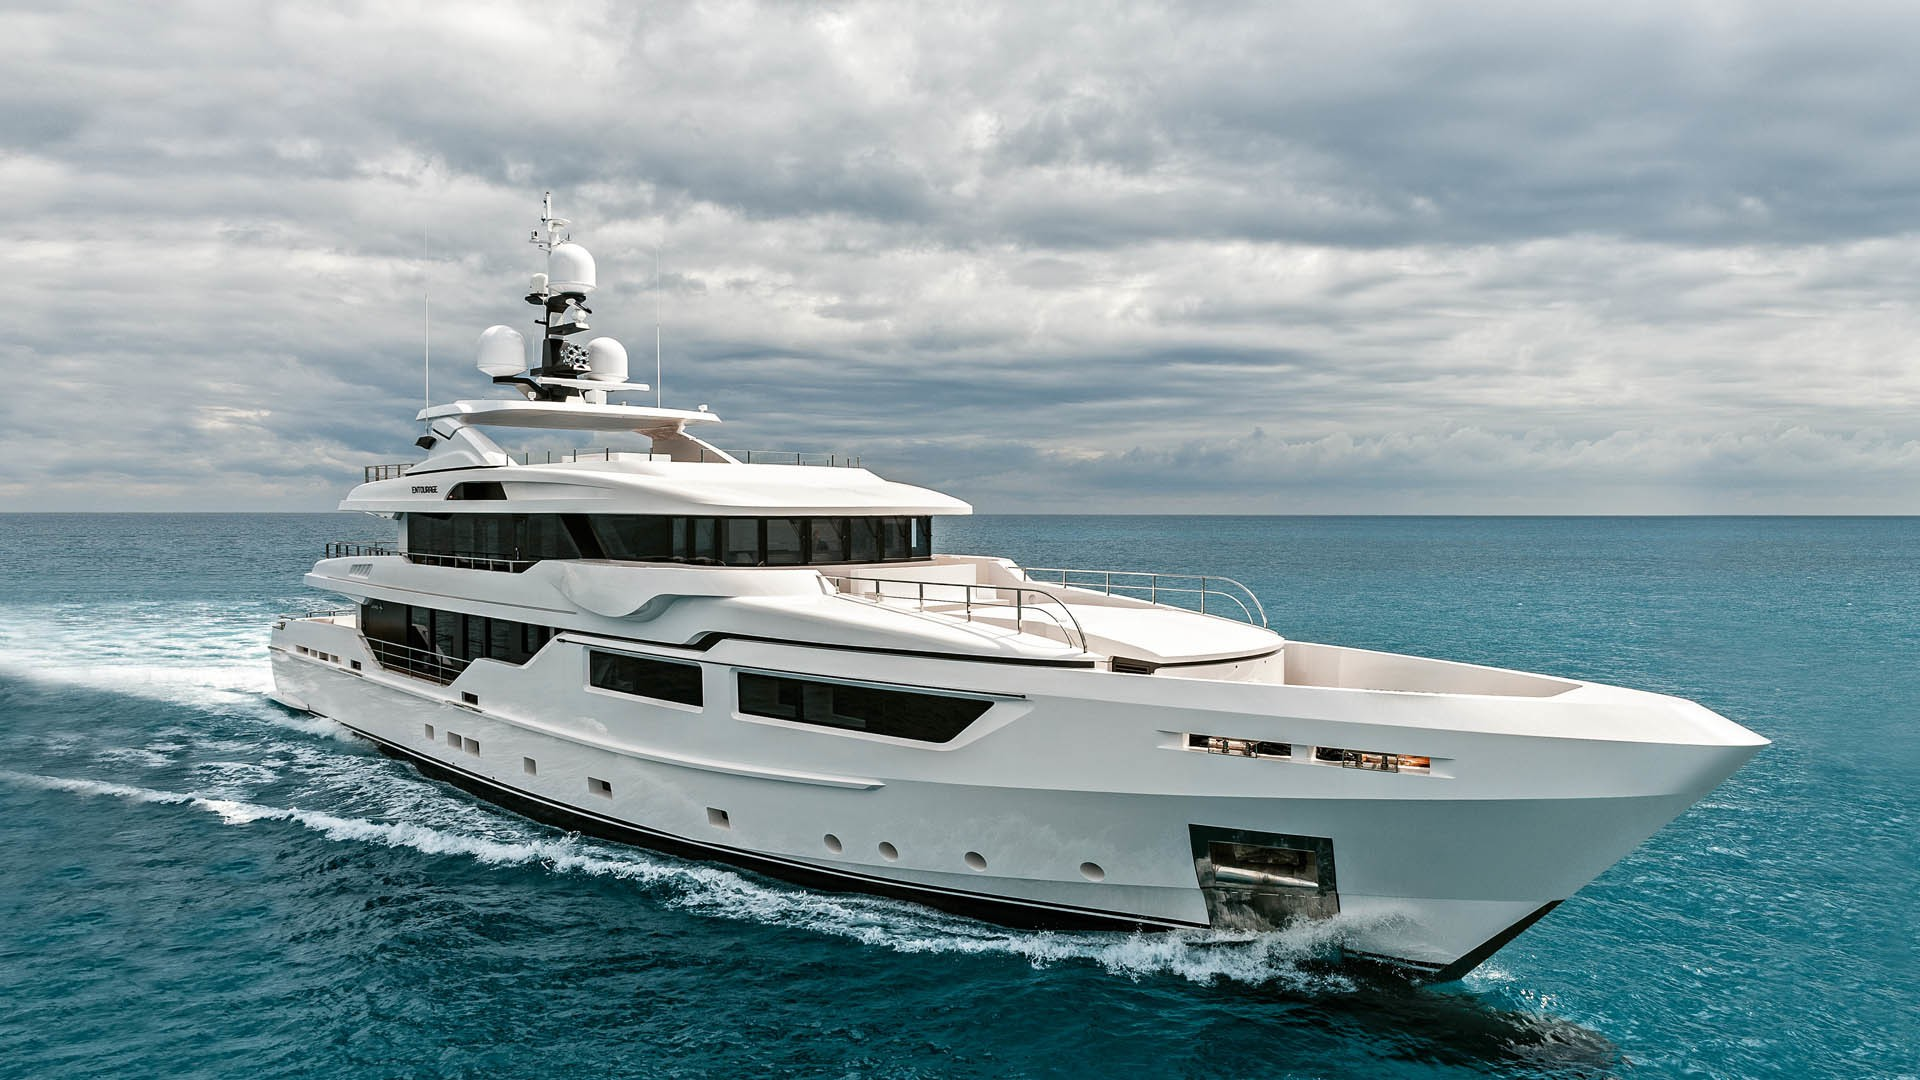 The 47m Yacht ENTOURAGE